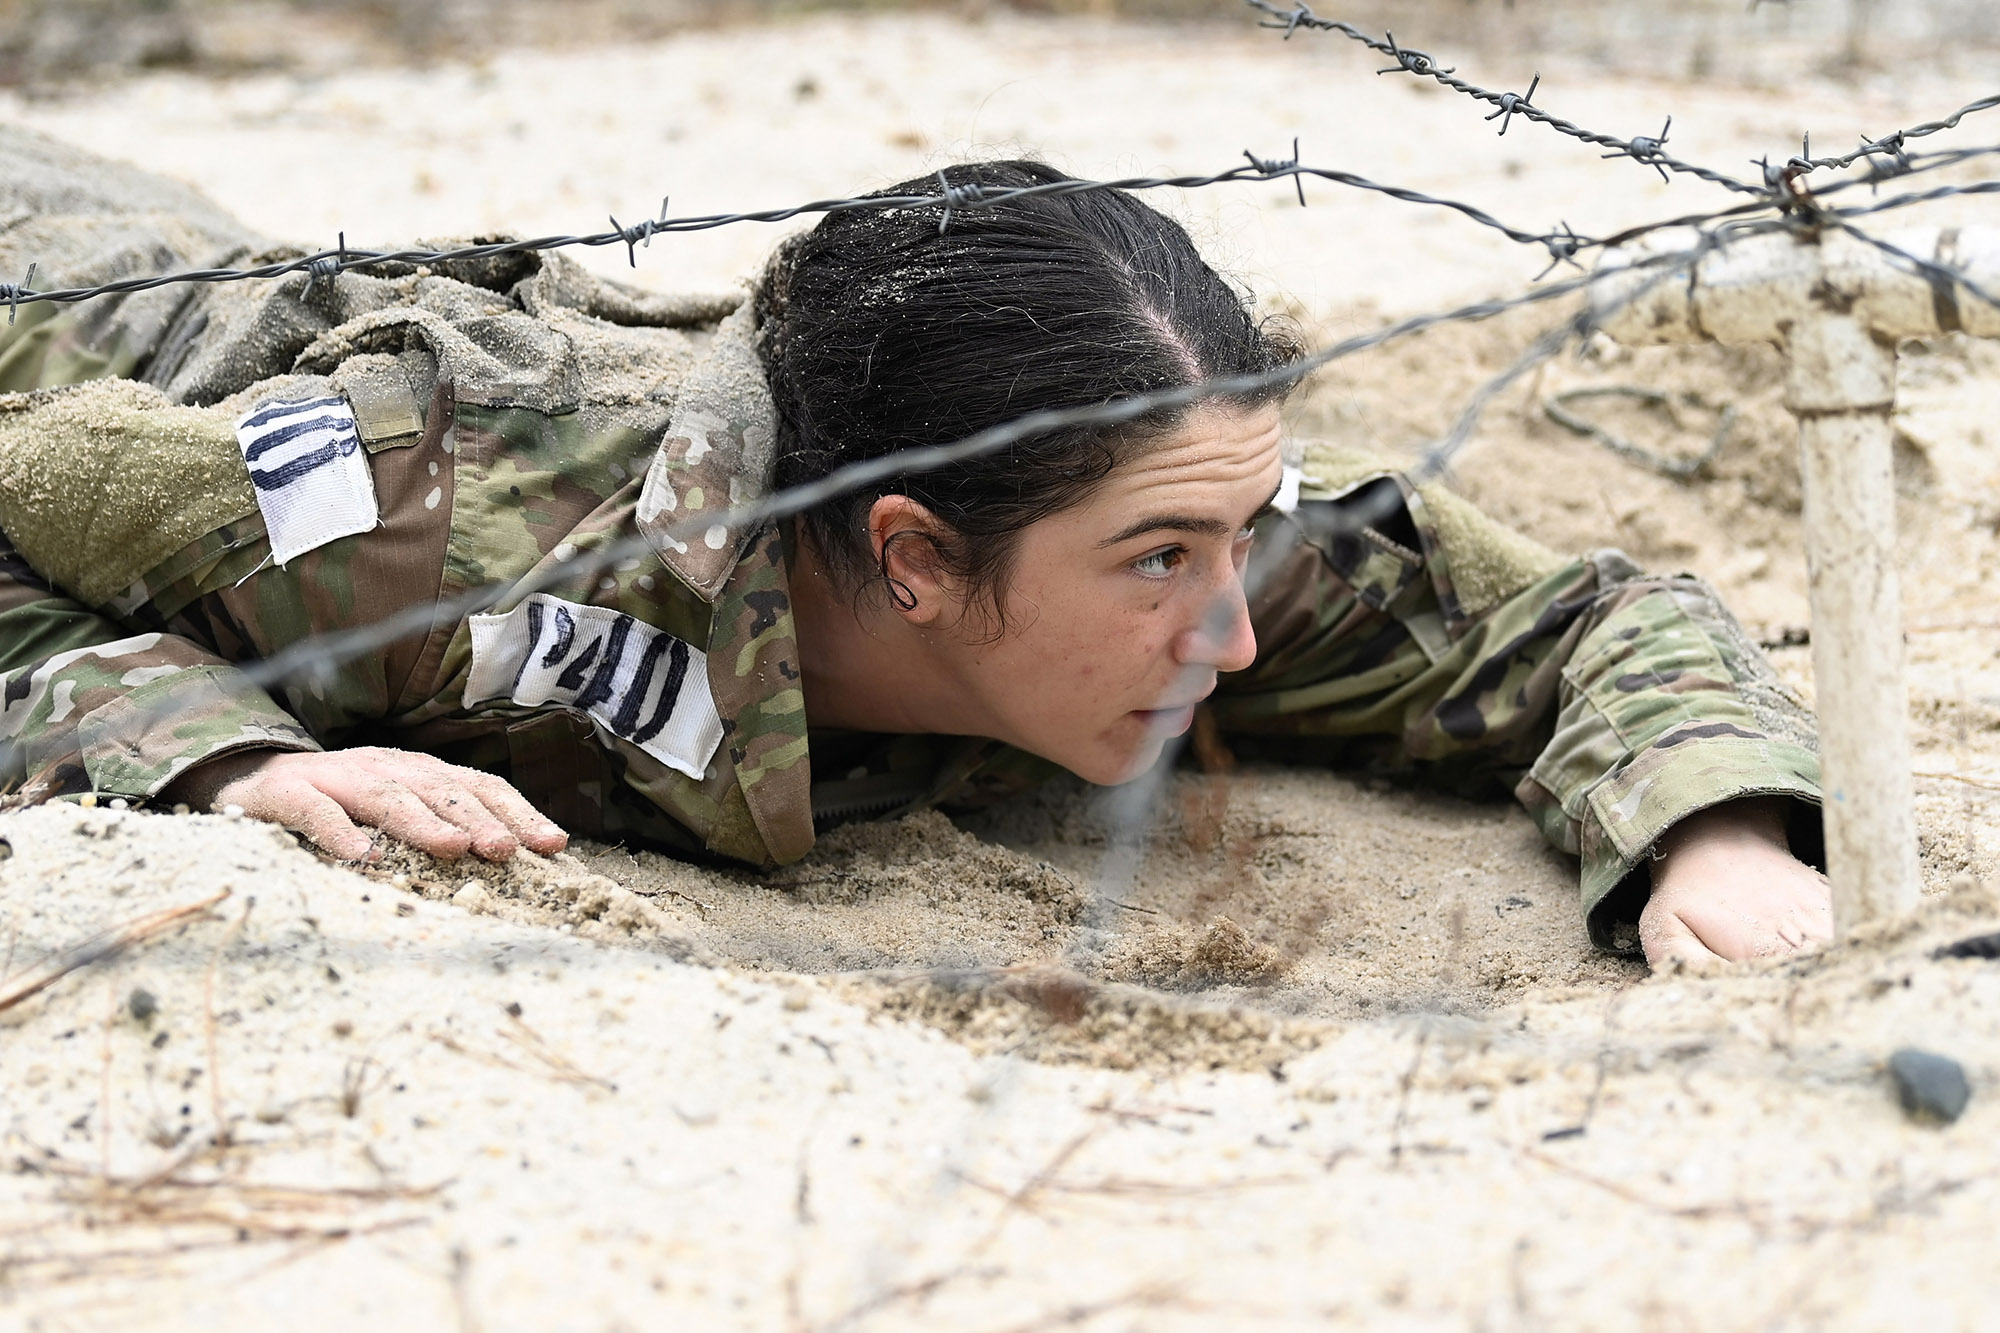 A soldier assigned to the U.S. Army John F. Kennedy Special Warfare Center and School low crawls under barbed wire during Psychological Operations Assessment and Selection at Camp Mackall, N.C., March 1, 2021. (K. Kassens/Army)